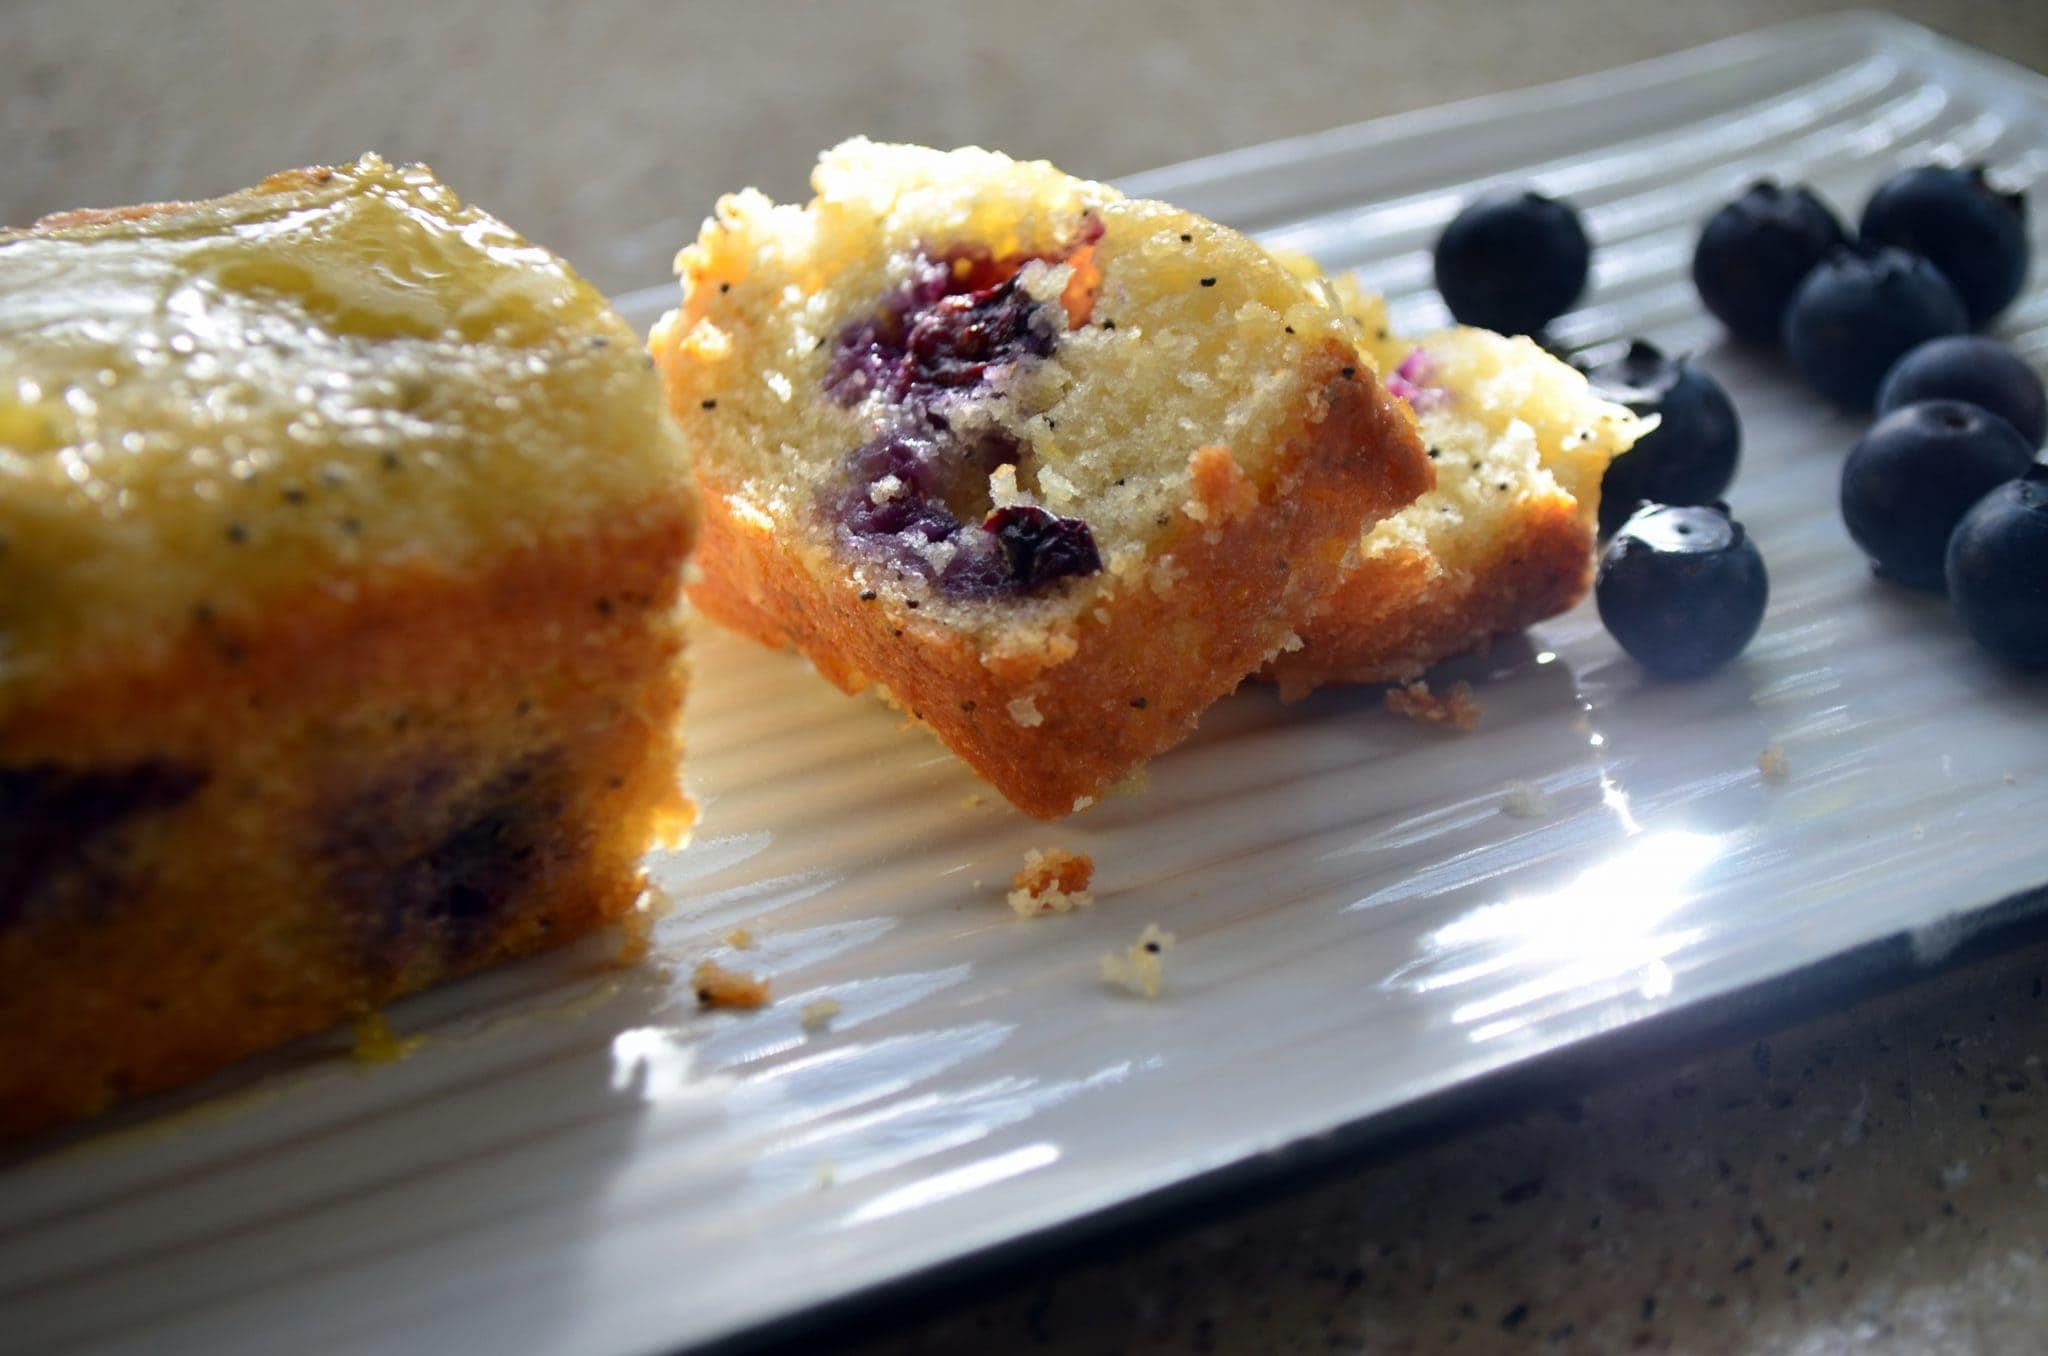 Blueberry Poppy-seed Bread with Orange Glaze